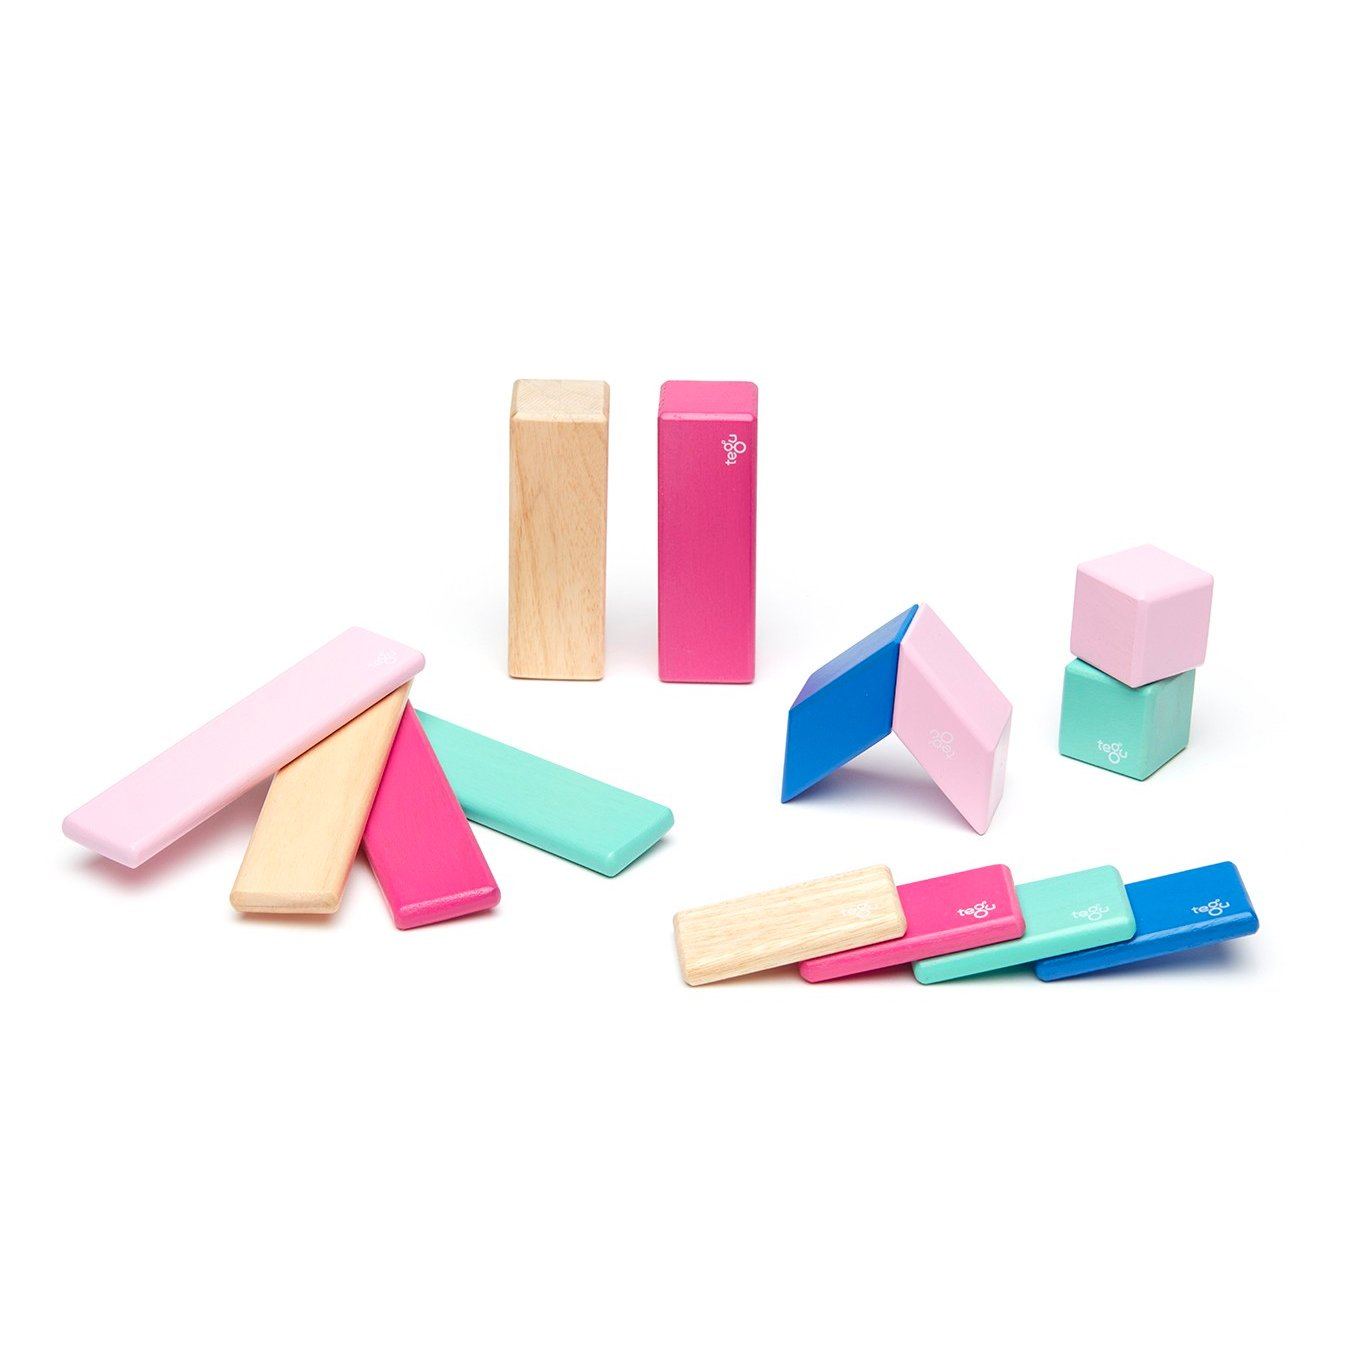 Tegu 14 Piece Magnetic Block Set Tegu Magnet Toys Blossom at Little Earth Nest Eco Shop